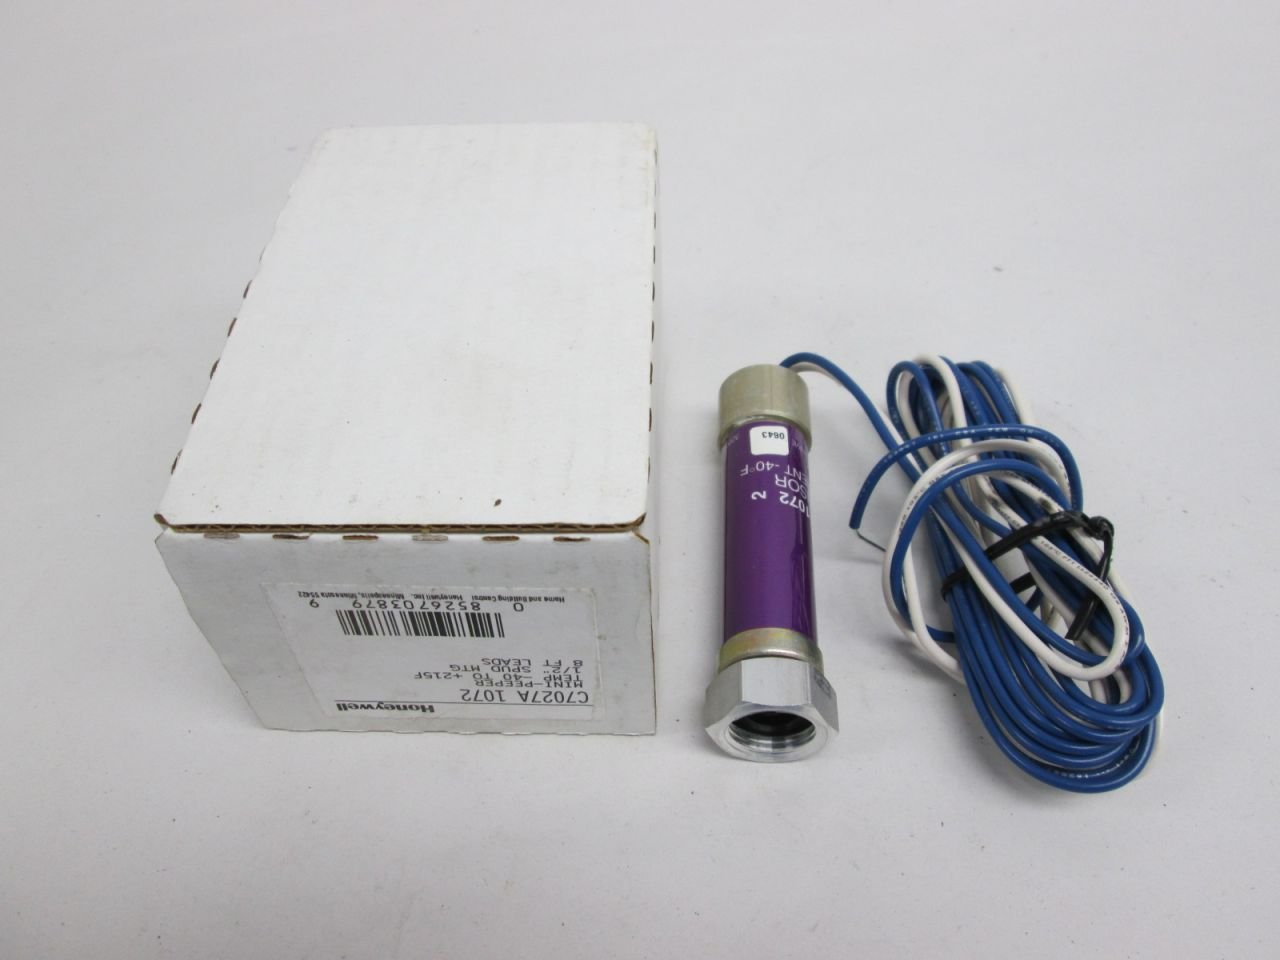 C7027A1072 Minipeeper Ultraviolet Flame Detector, 8 feet leads